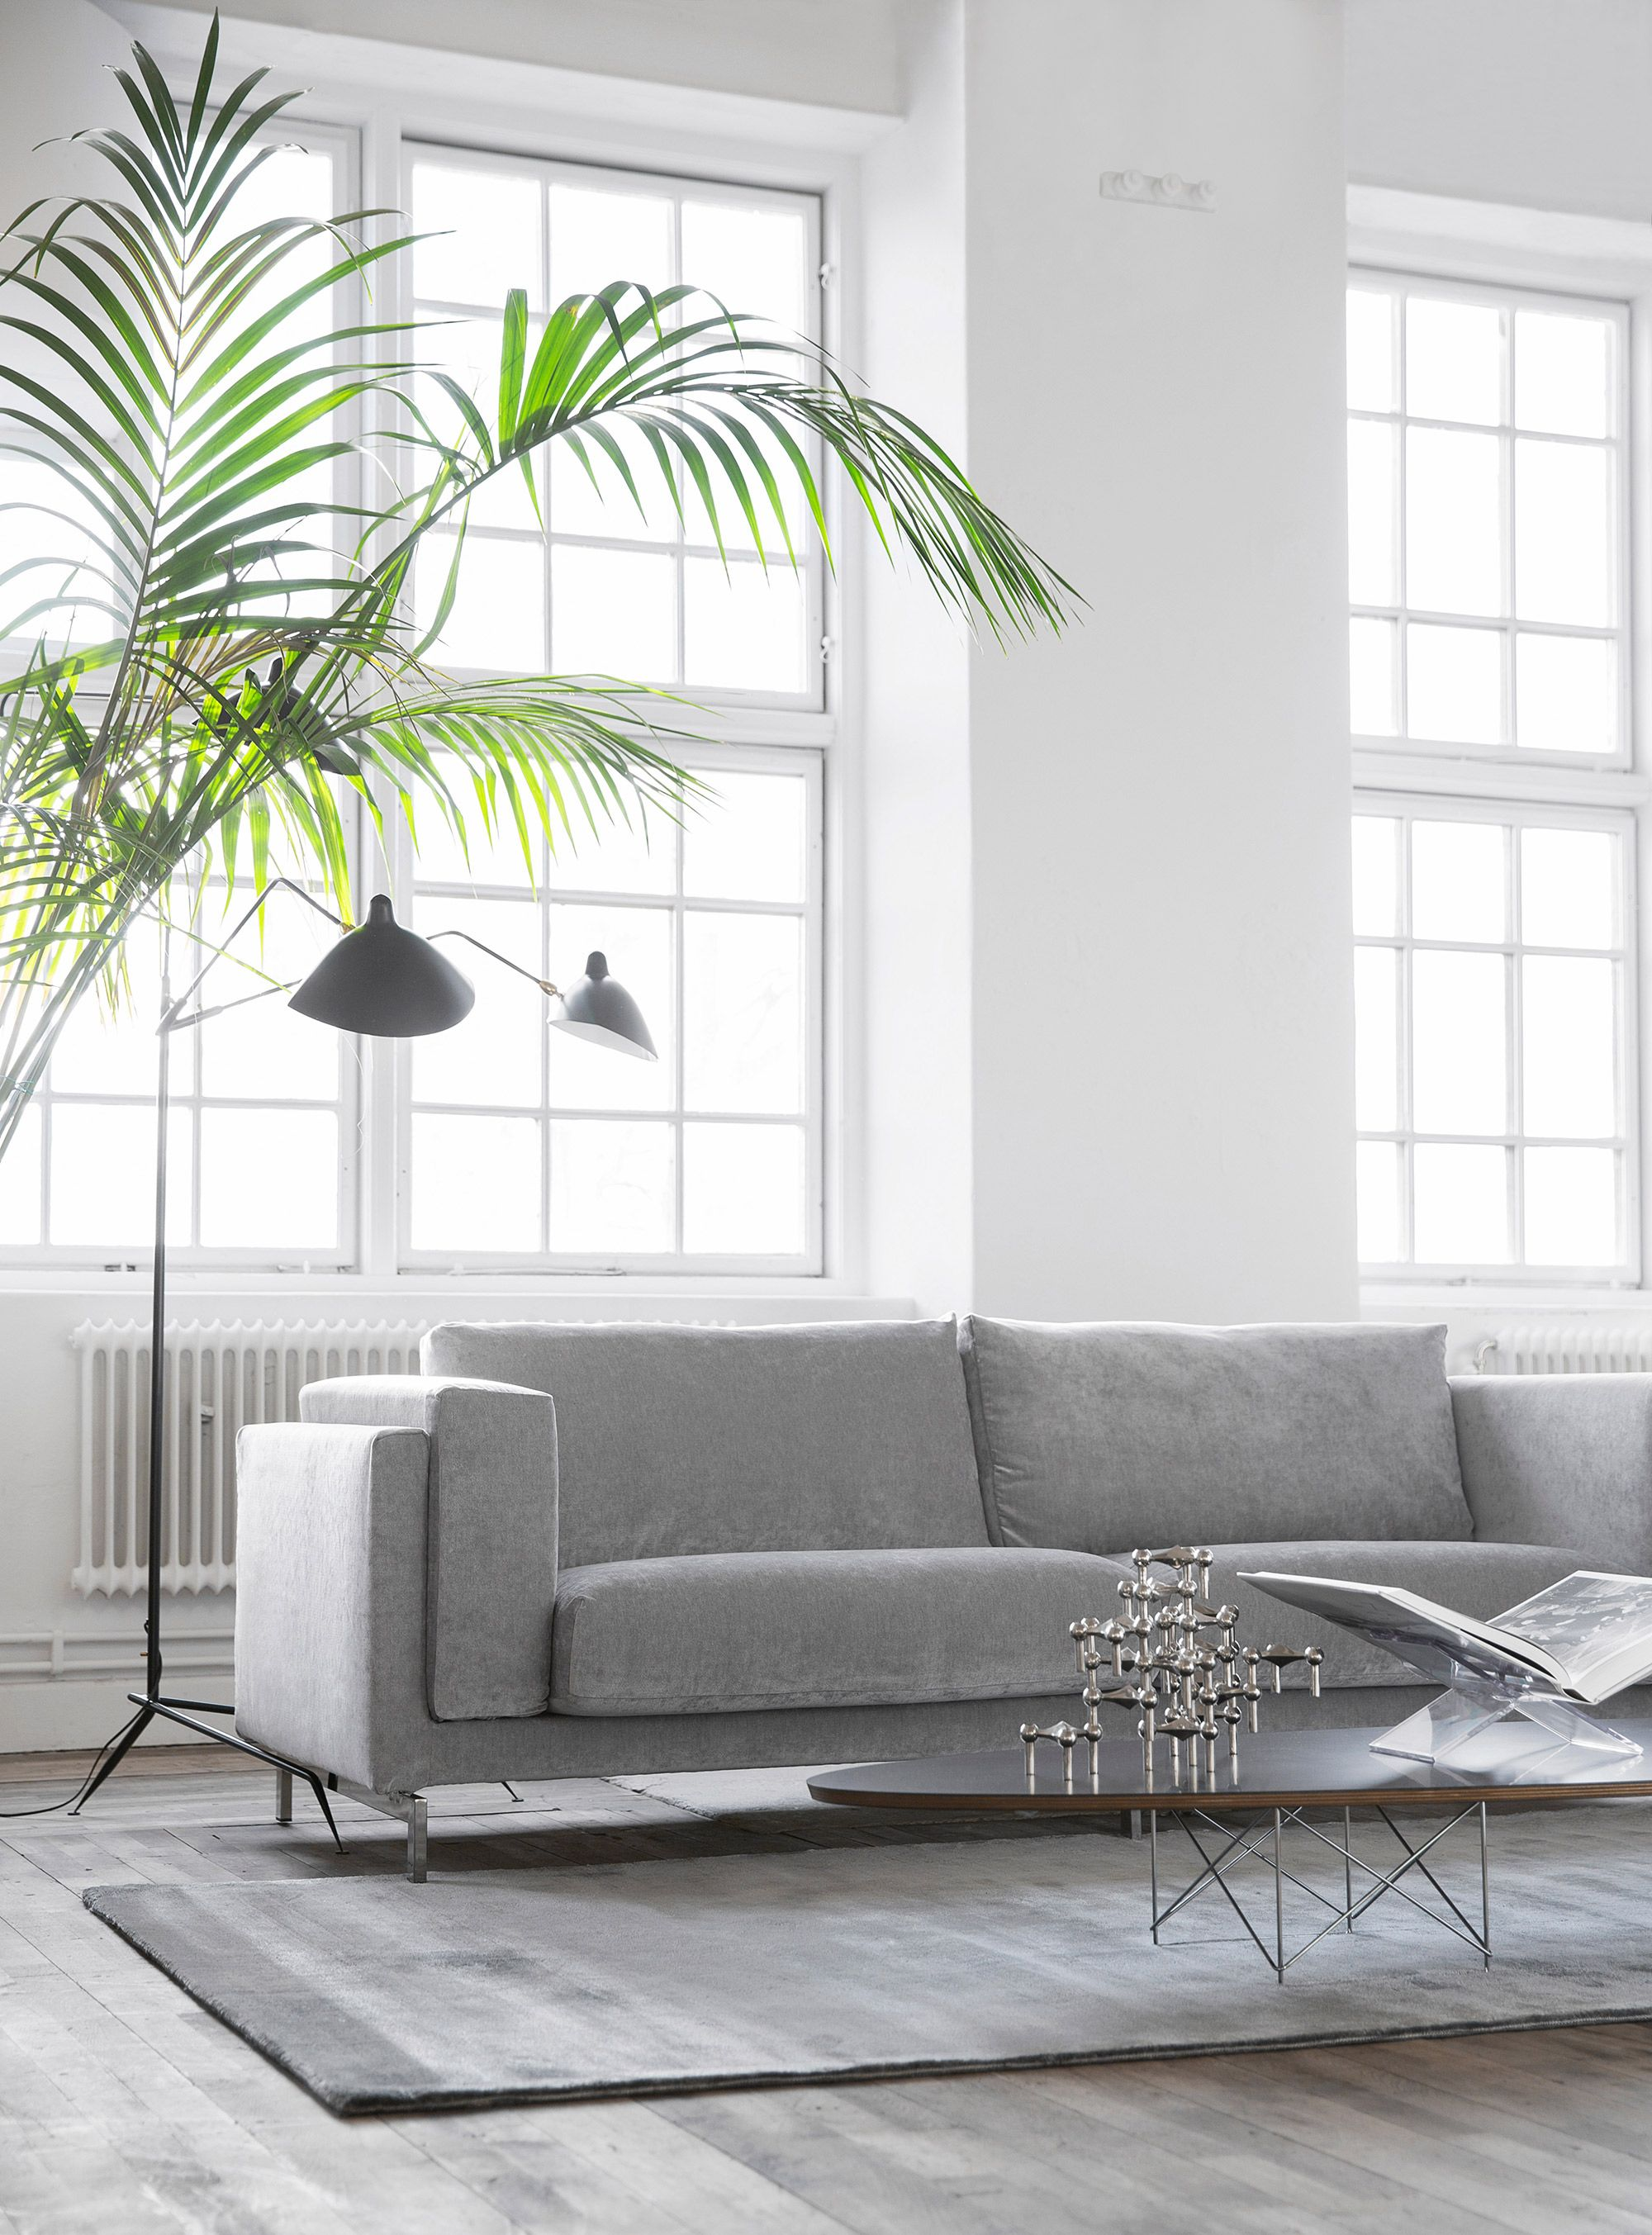 Industrial Style Loft Modern Art Deco Vibes With A Grey Velvet Sofa Streamlined Coffee Table And F Ikea Nockeby Sofa Grey Velvet Sofa Cheap Furniture Online